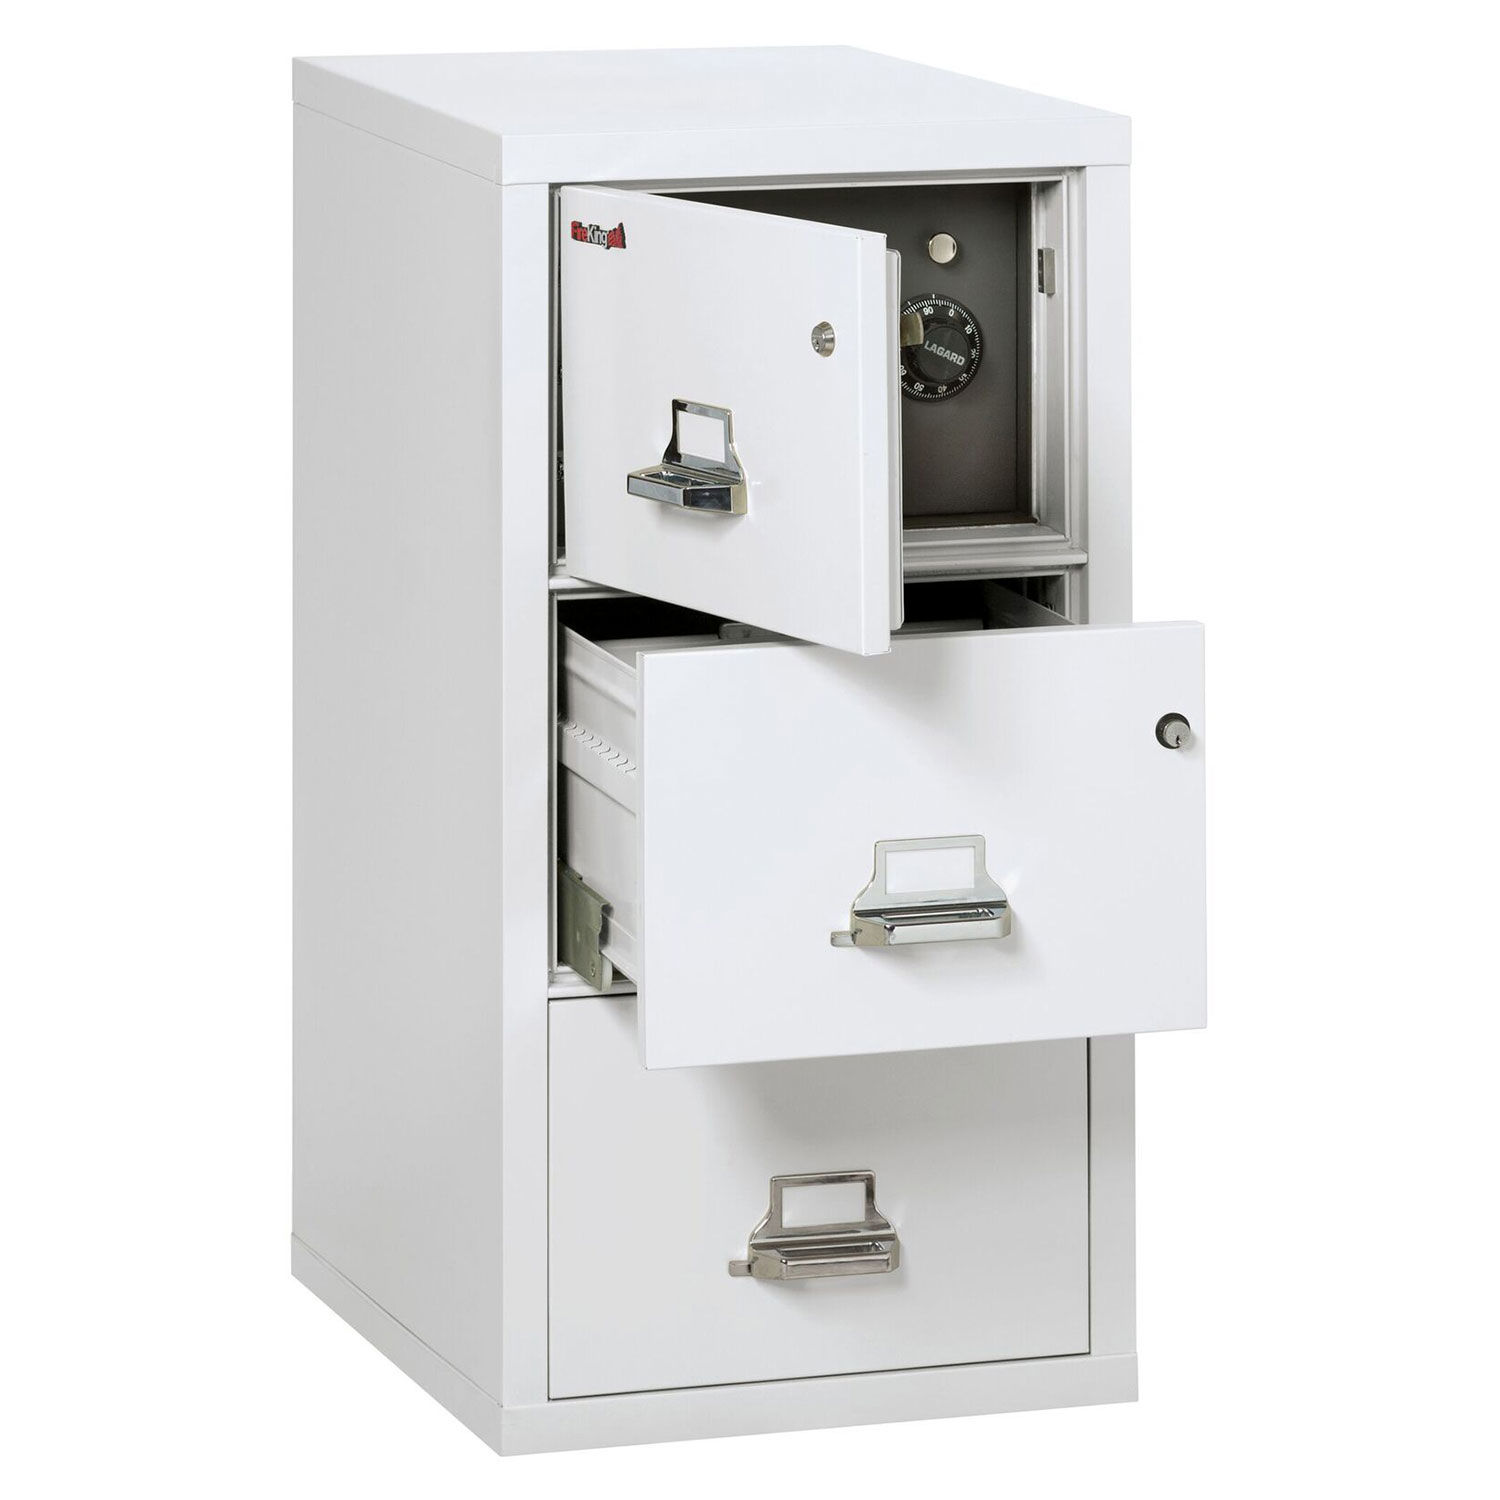 Details About Fireking Fireproof 3 Drawer Vertical Safe In File Legal White